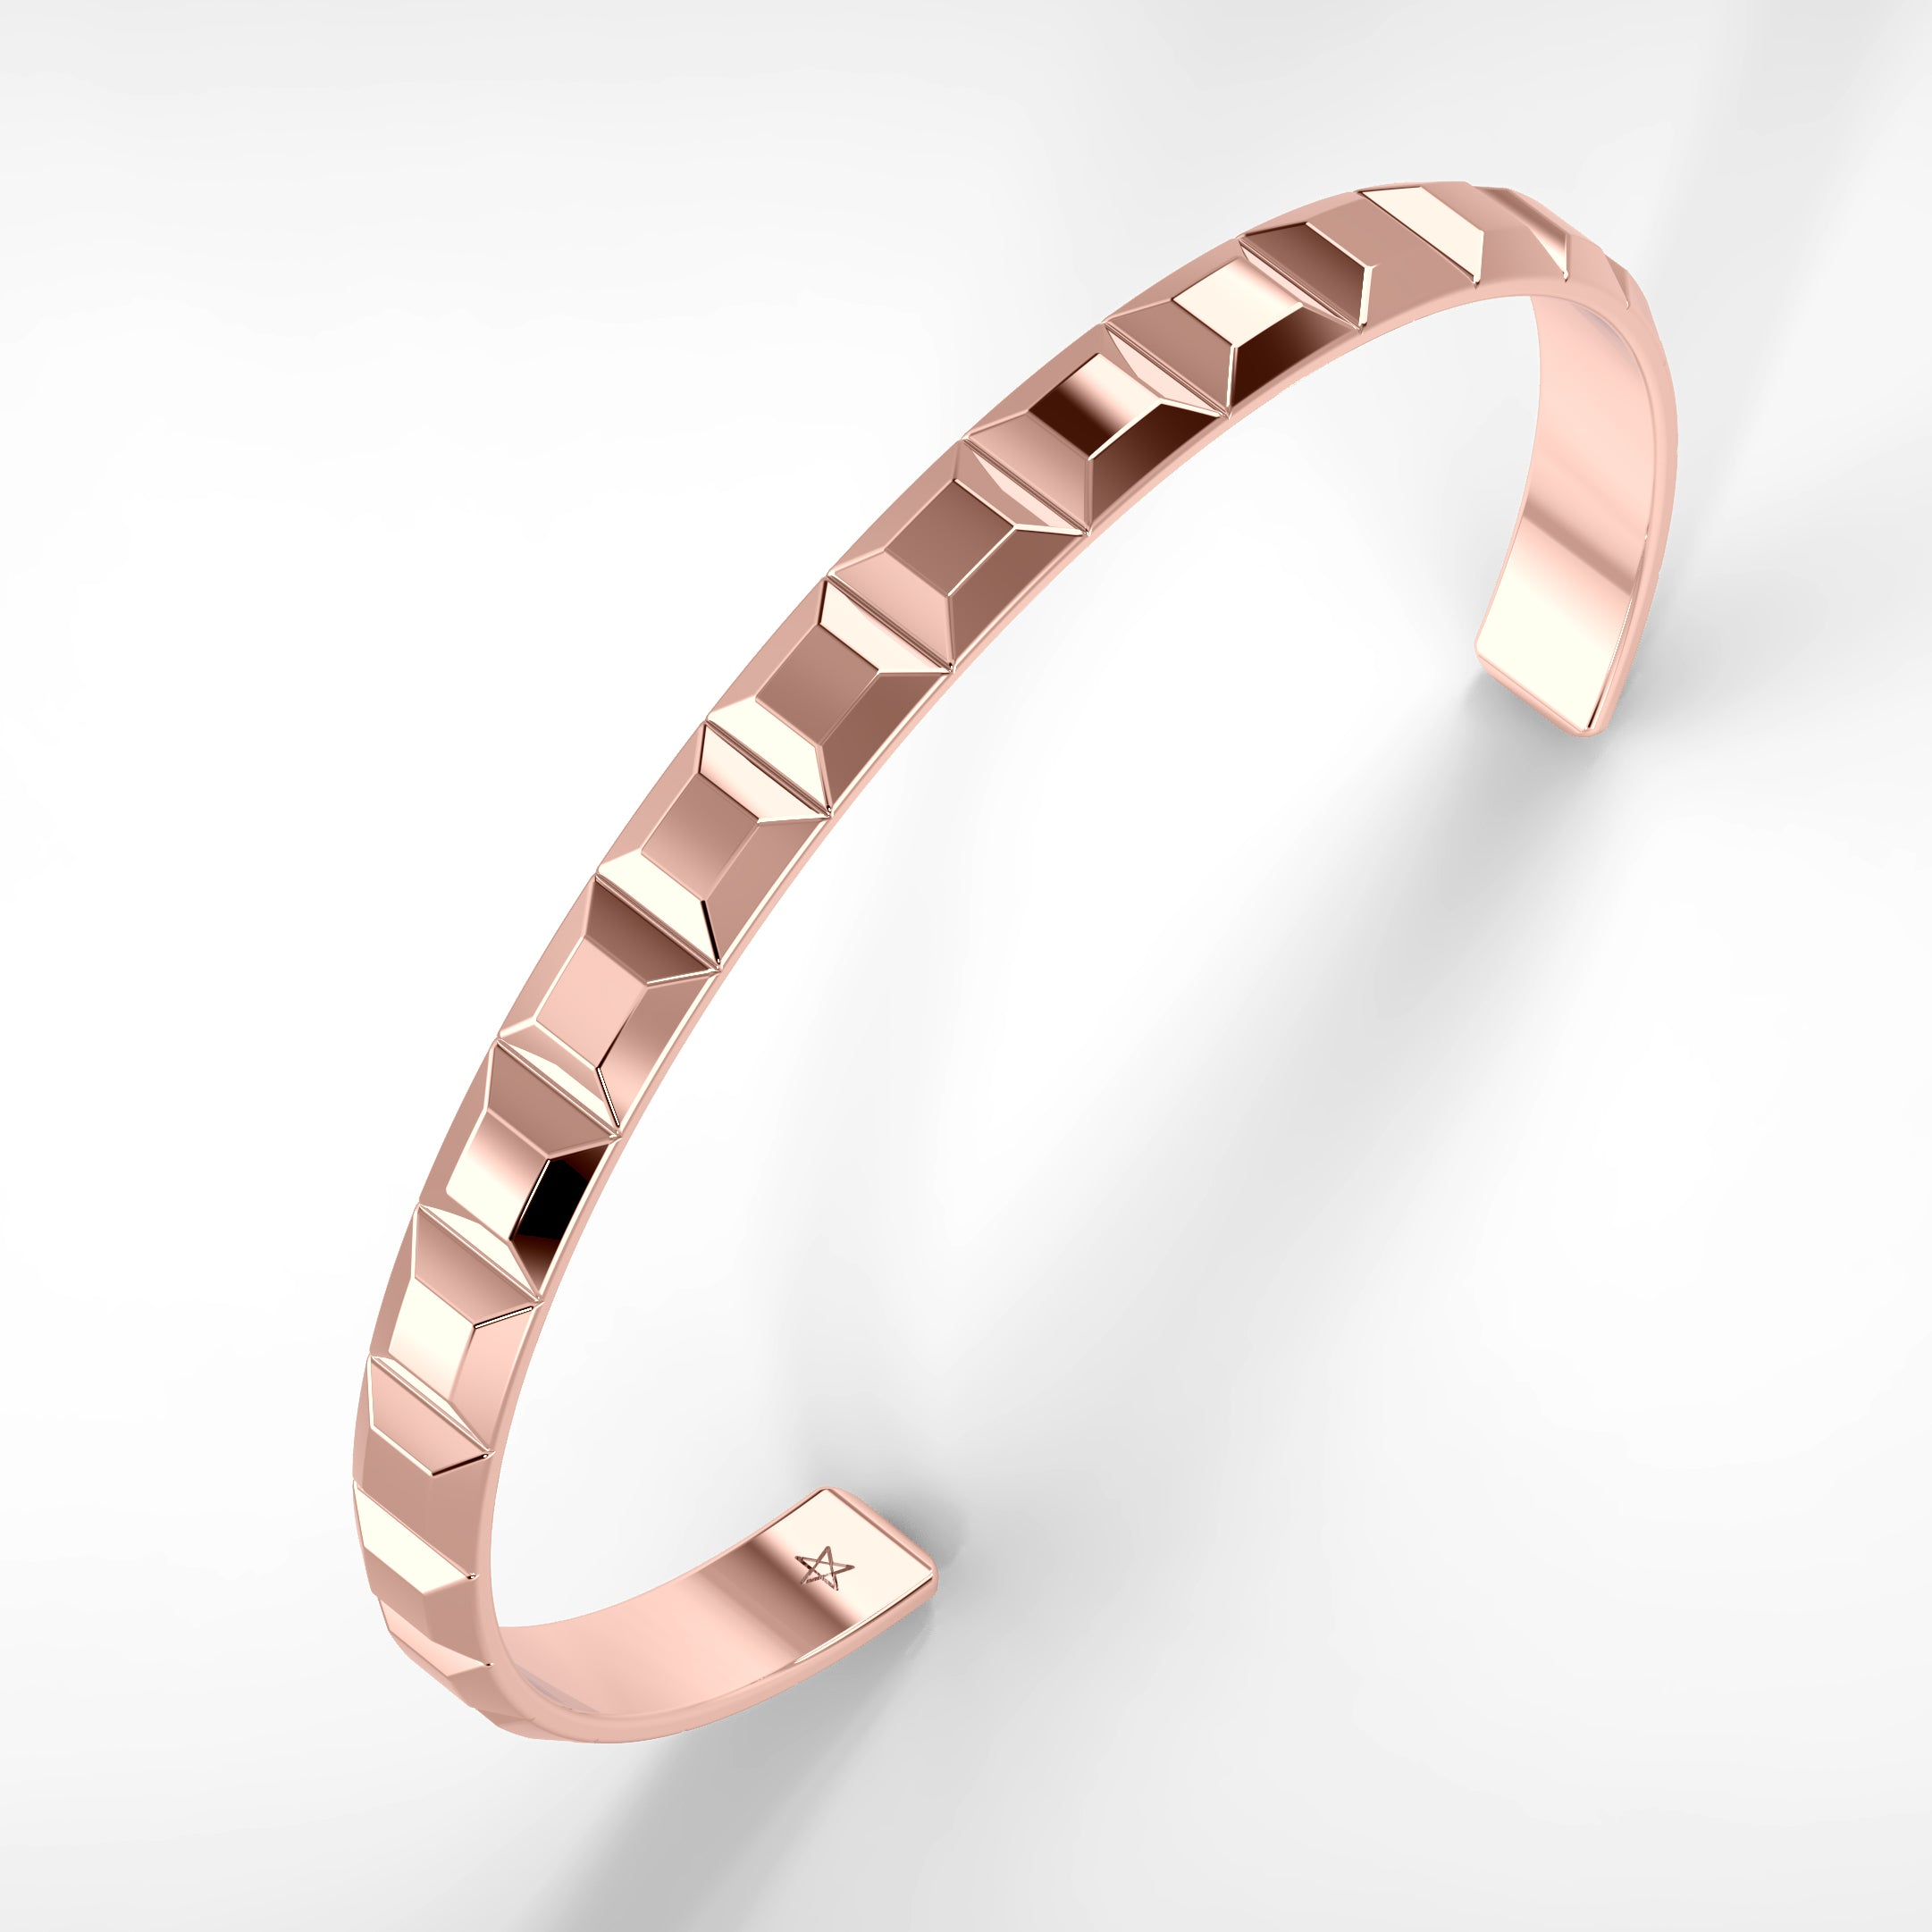 Large Rose Gold Pyramid Bracelet by Fine Relic